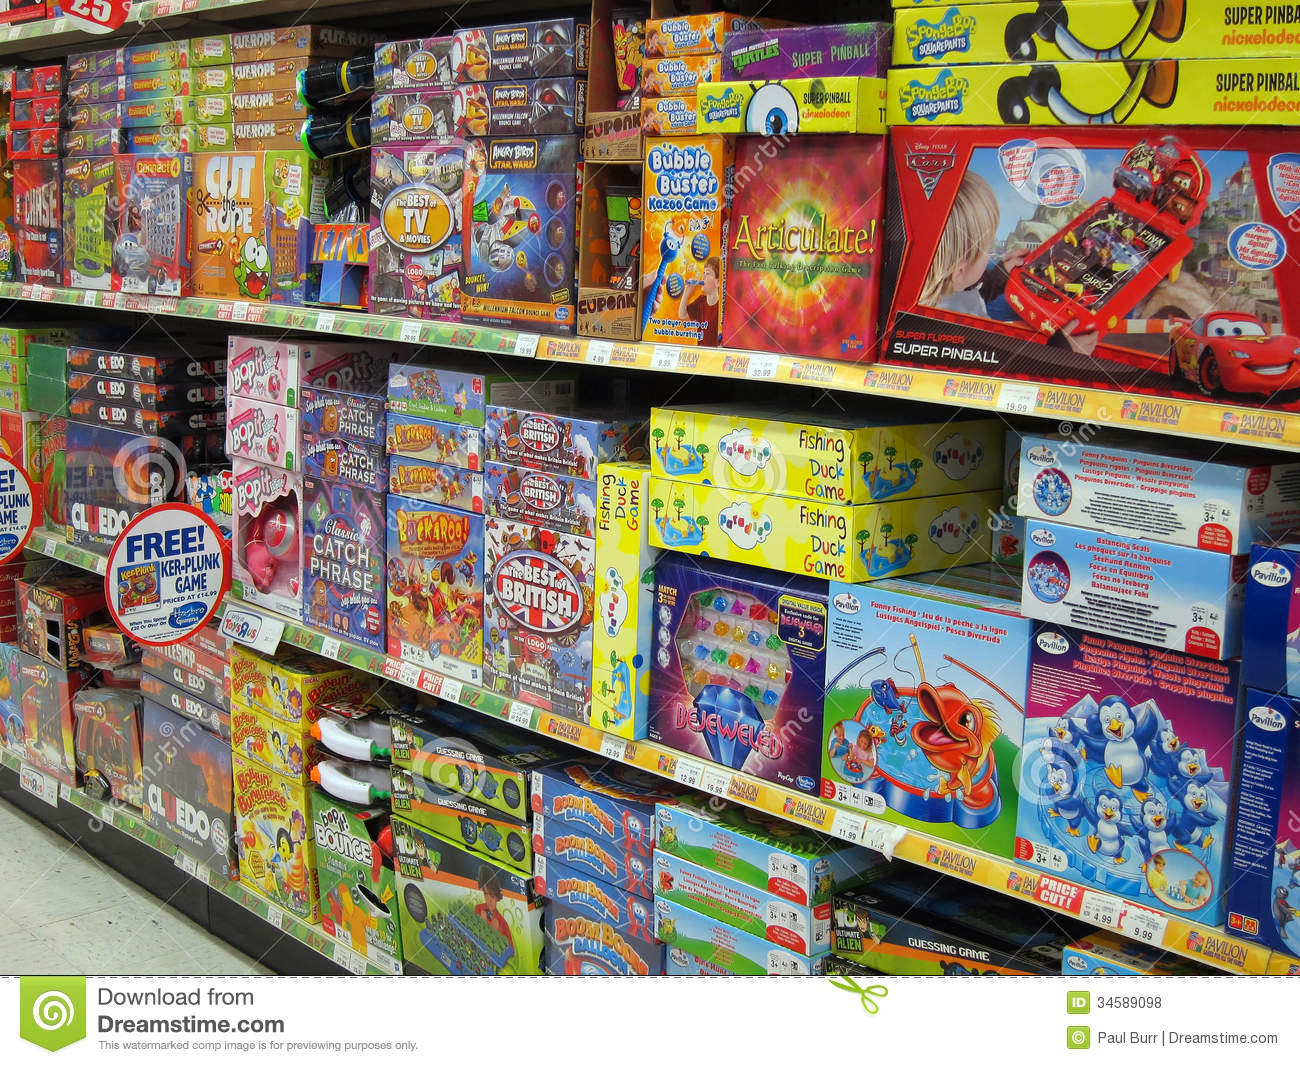 Toys R Us Games : Board games in a toy store editorial stock photo image